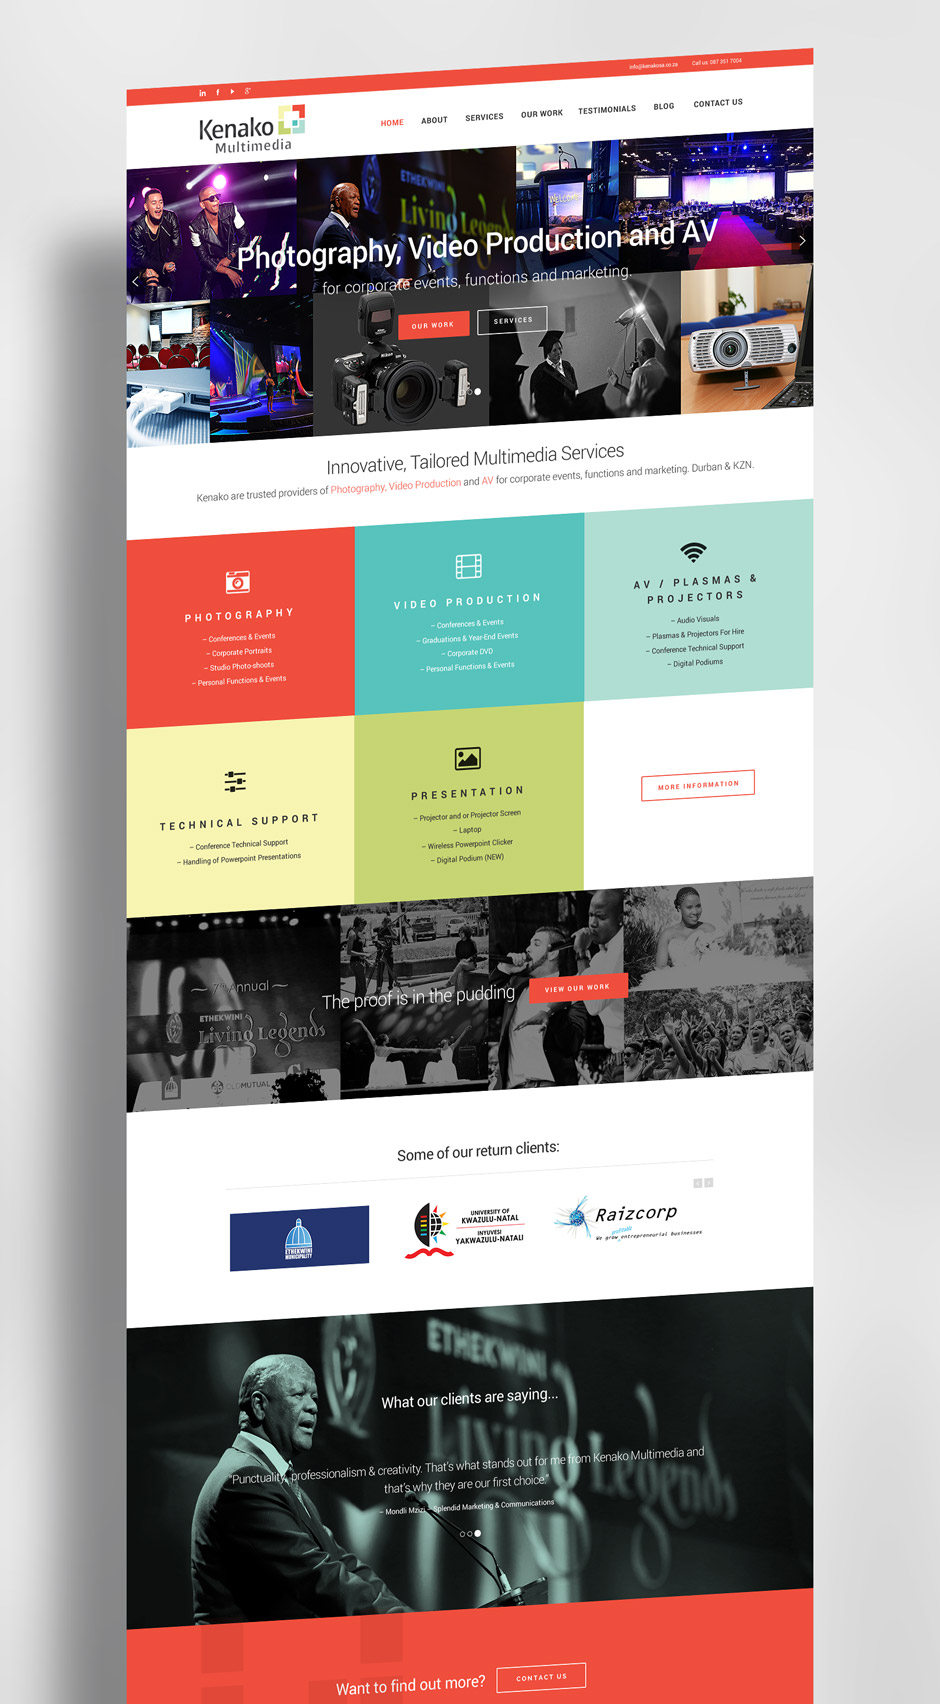 Kenako Web Design Mock Up - Web Designer Durban